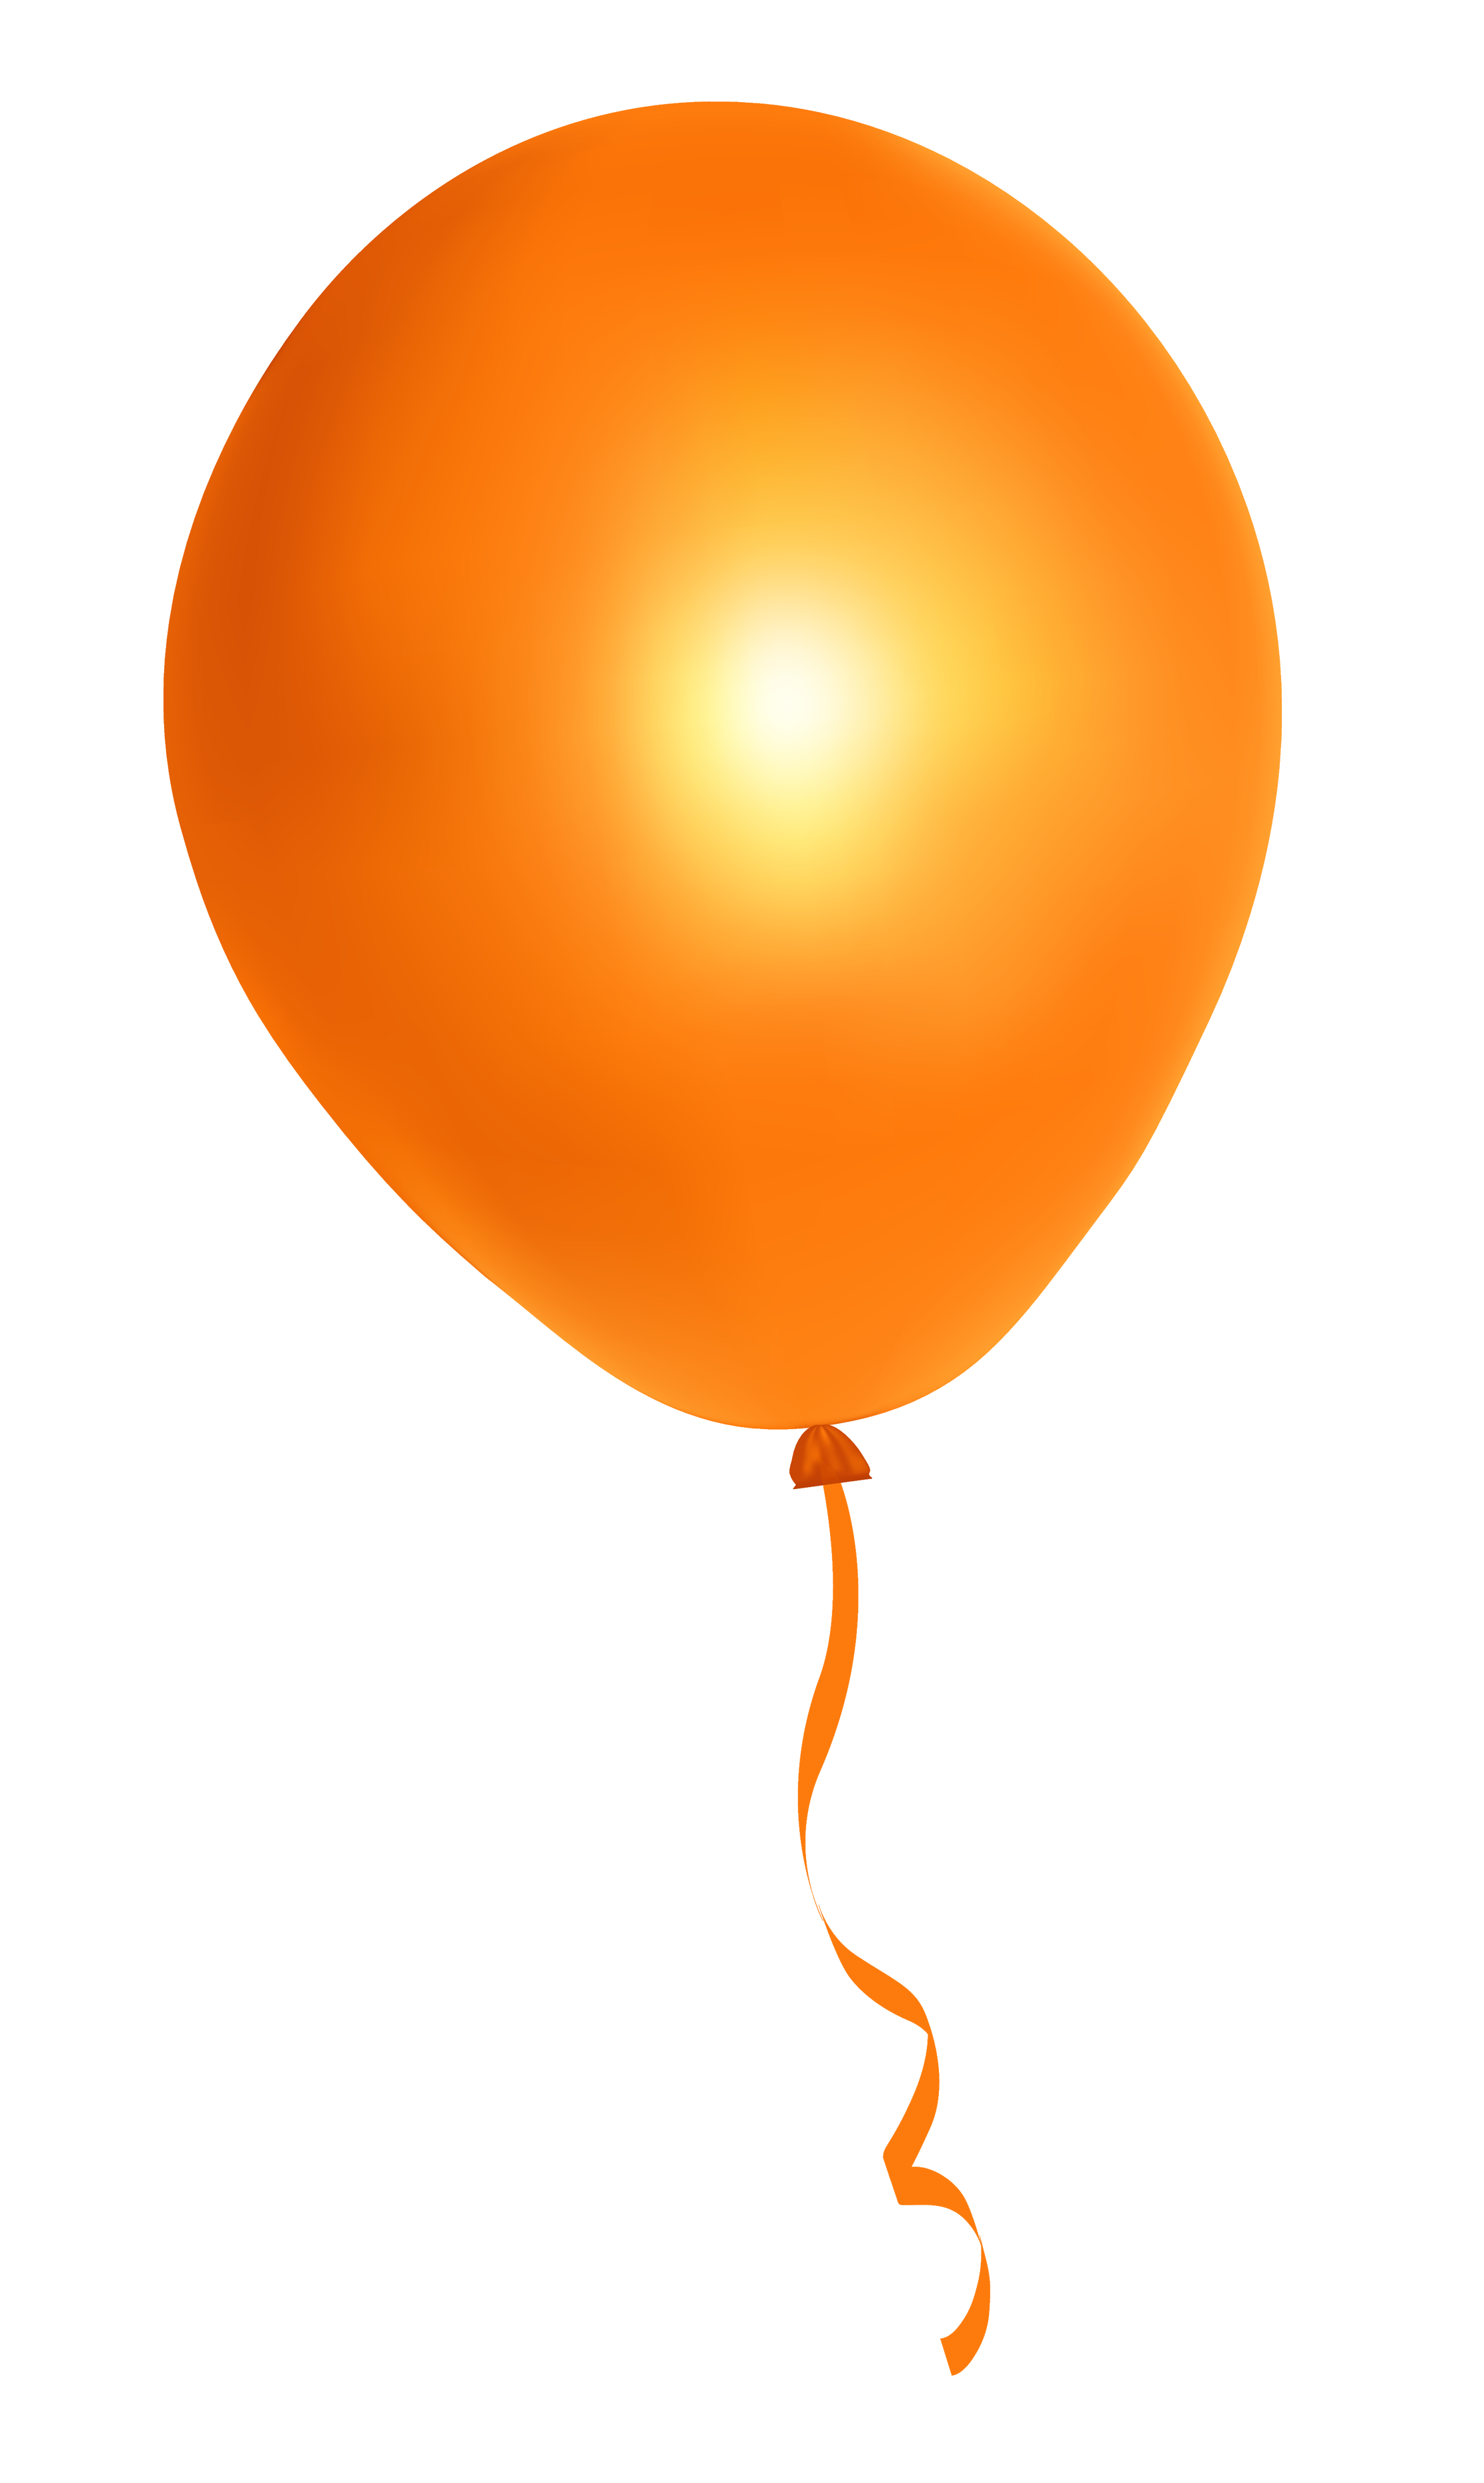 collection of png. Clipart balloon orange